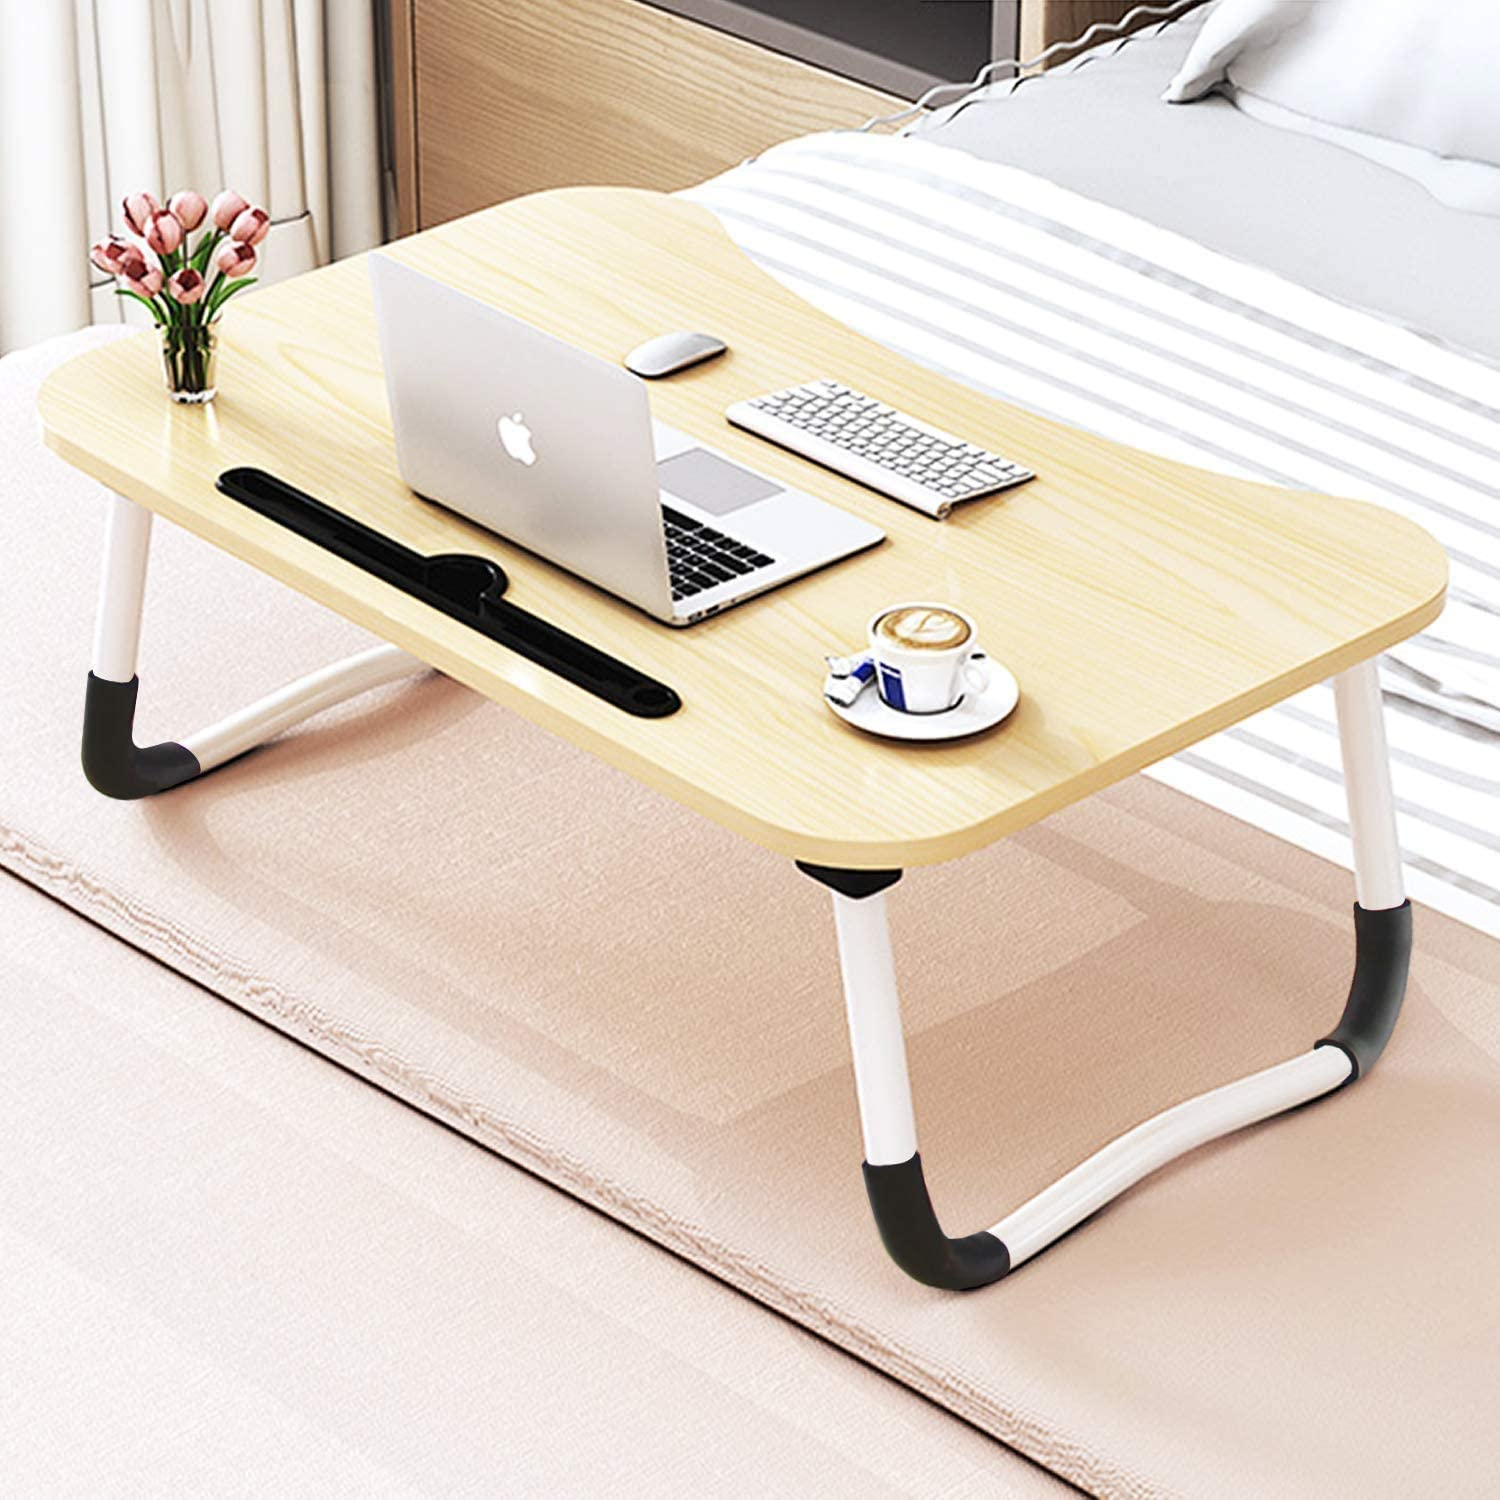 Laptop Desk, Sereey Portable Laptop Bed Tray Table Notebook Stand Reading Holder with Foldable Legs & Cup Slot for Eating Breakfast, Reading Book, Watching Movie on Bed/Couch/Sofa